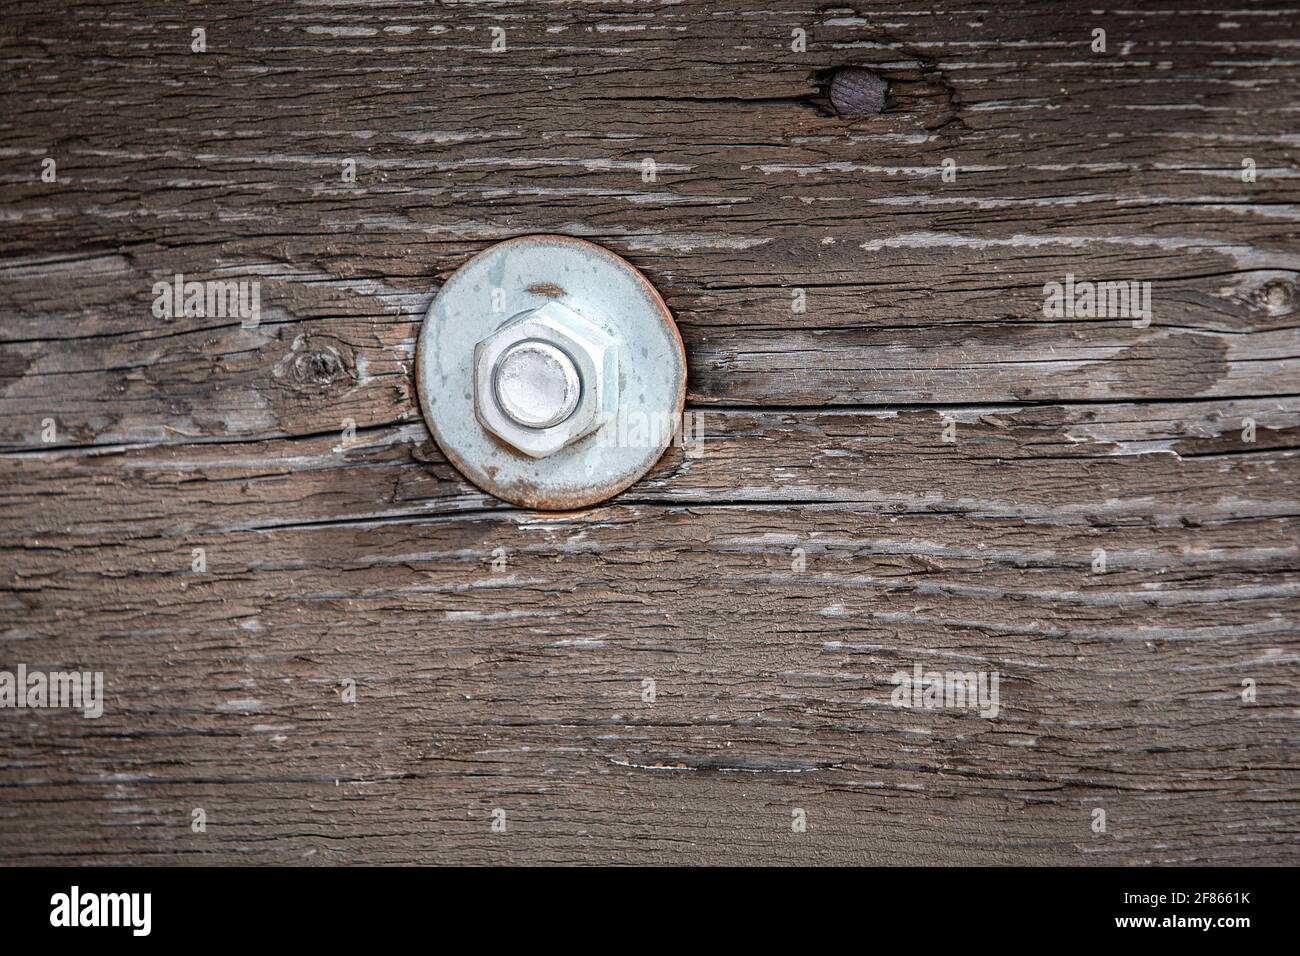 Bolt in Wooden Construction. Old Painted Wood. Stock Photo